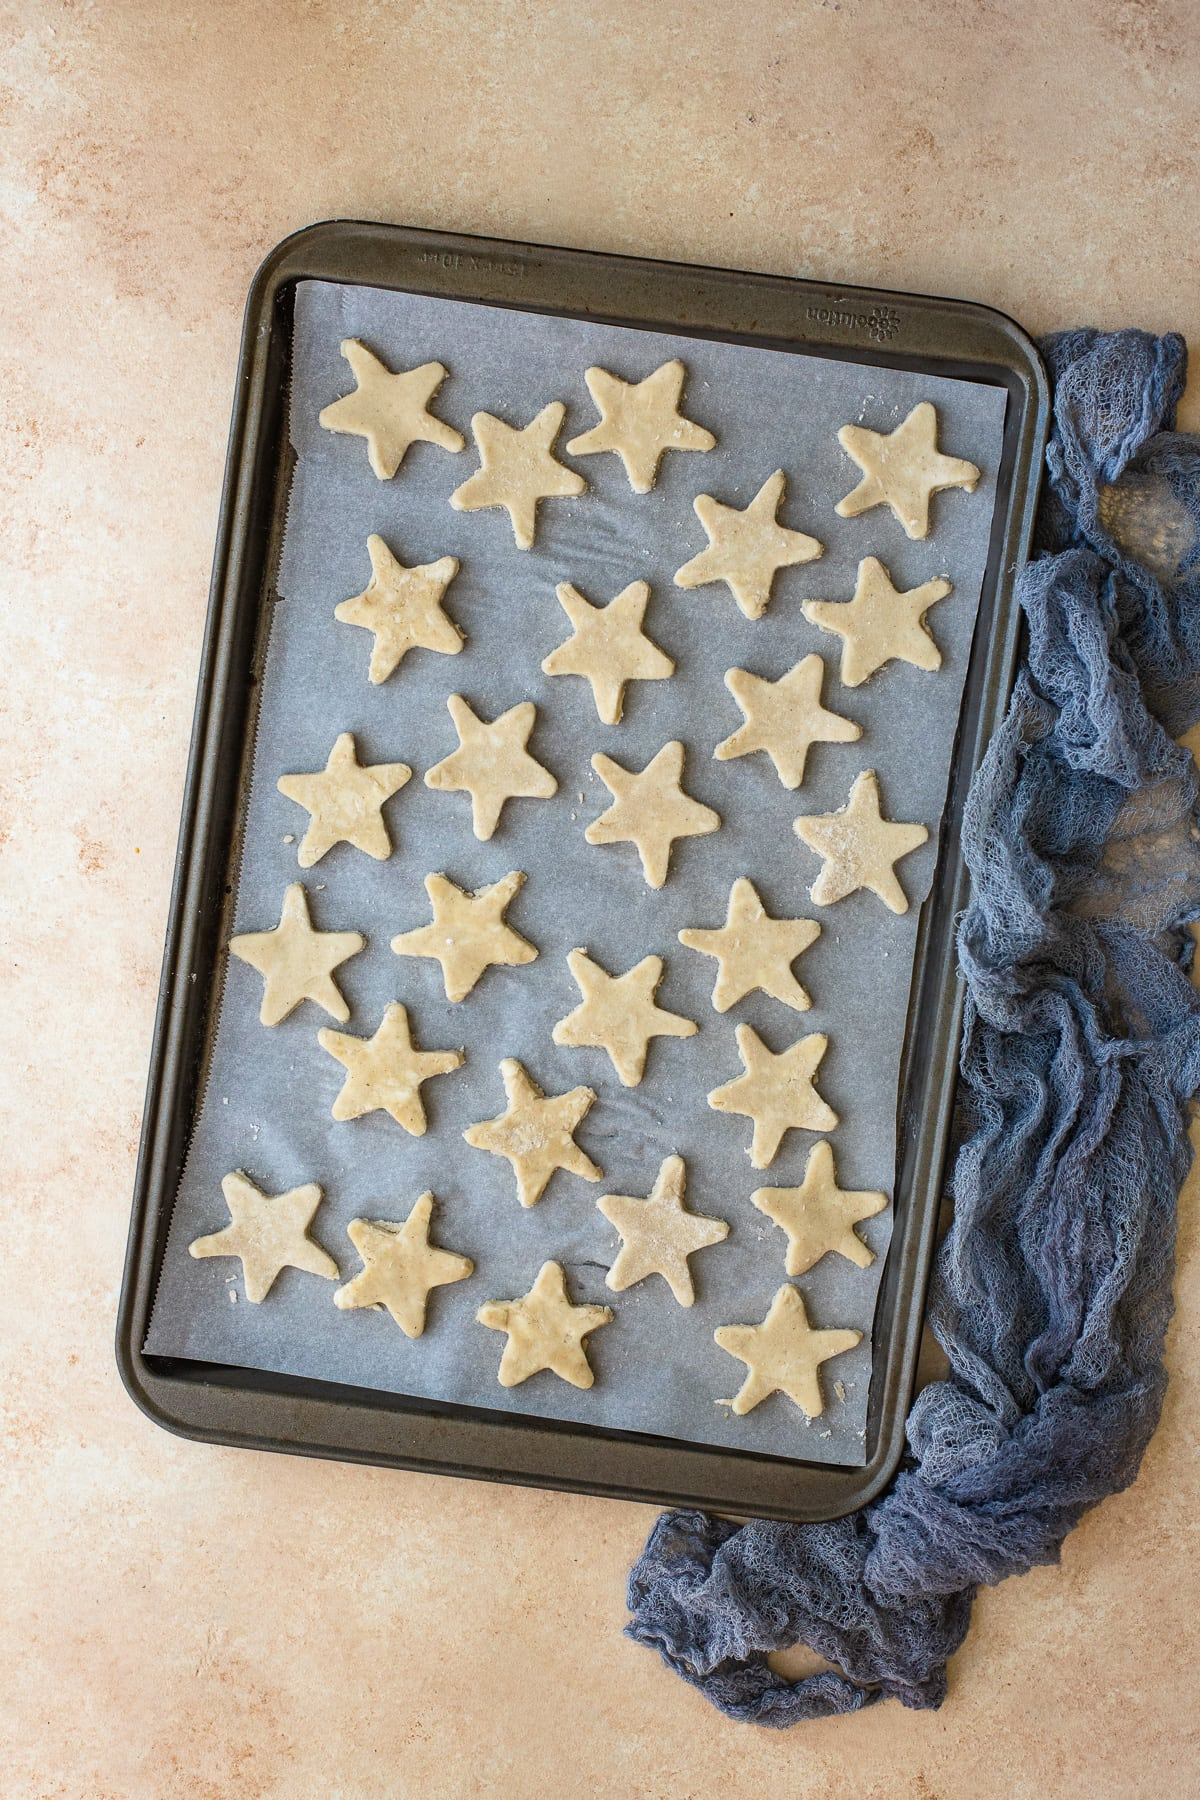 Pie crust stars arranged on a parchment-lined baking sheet.